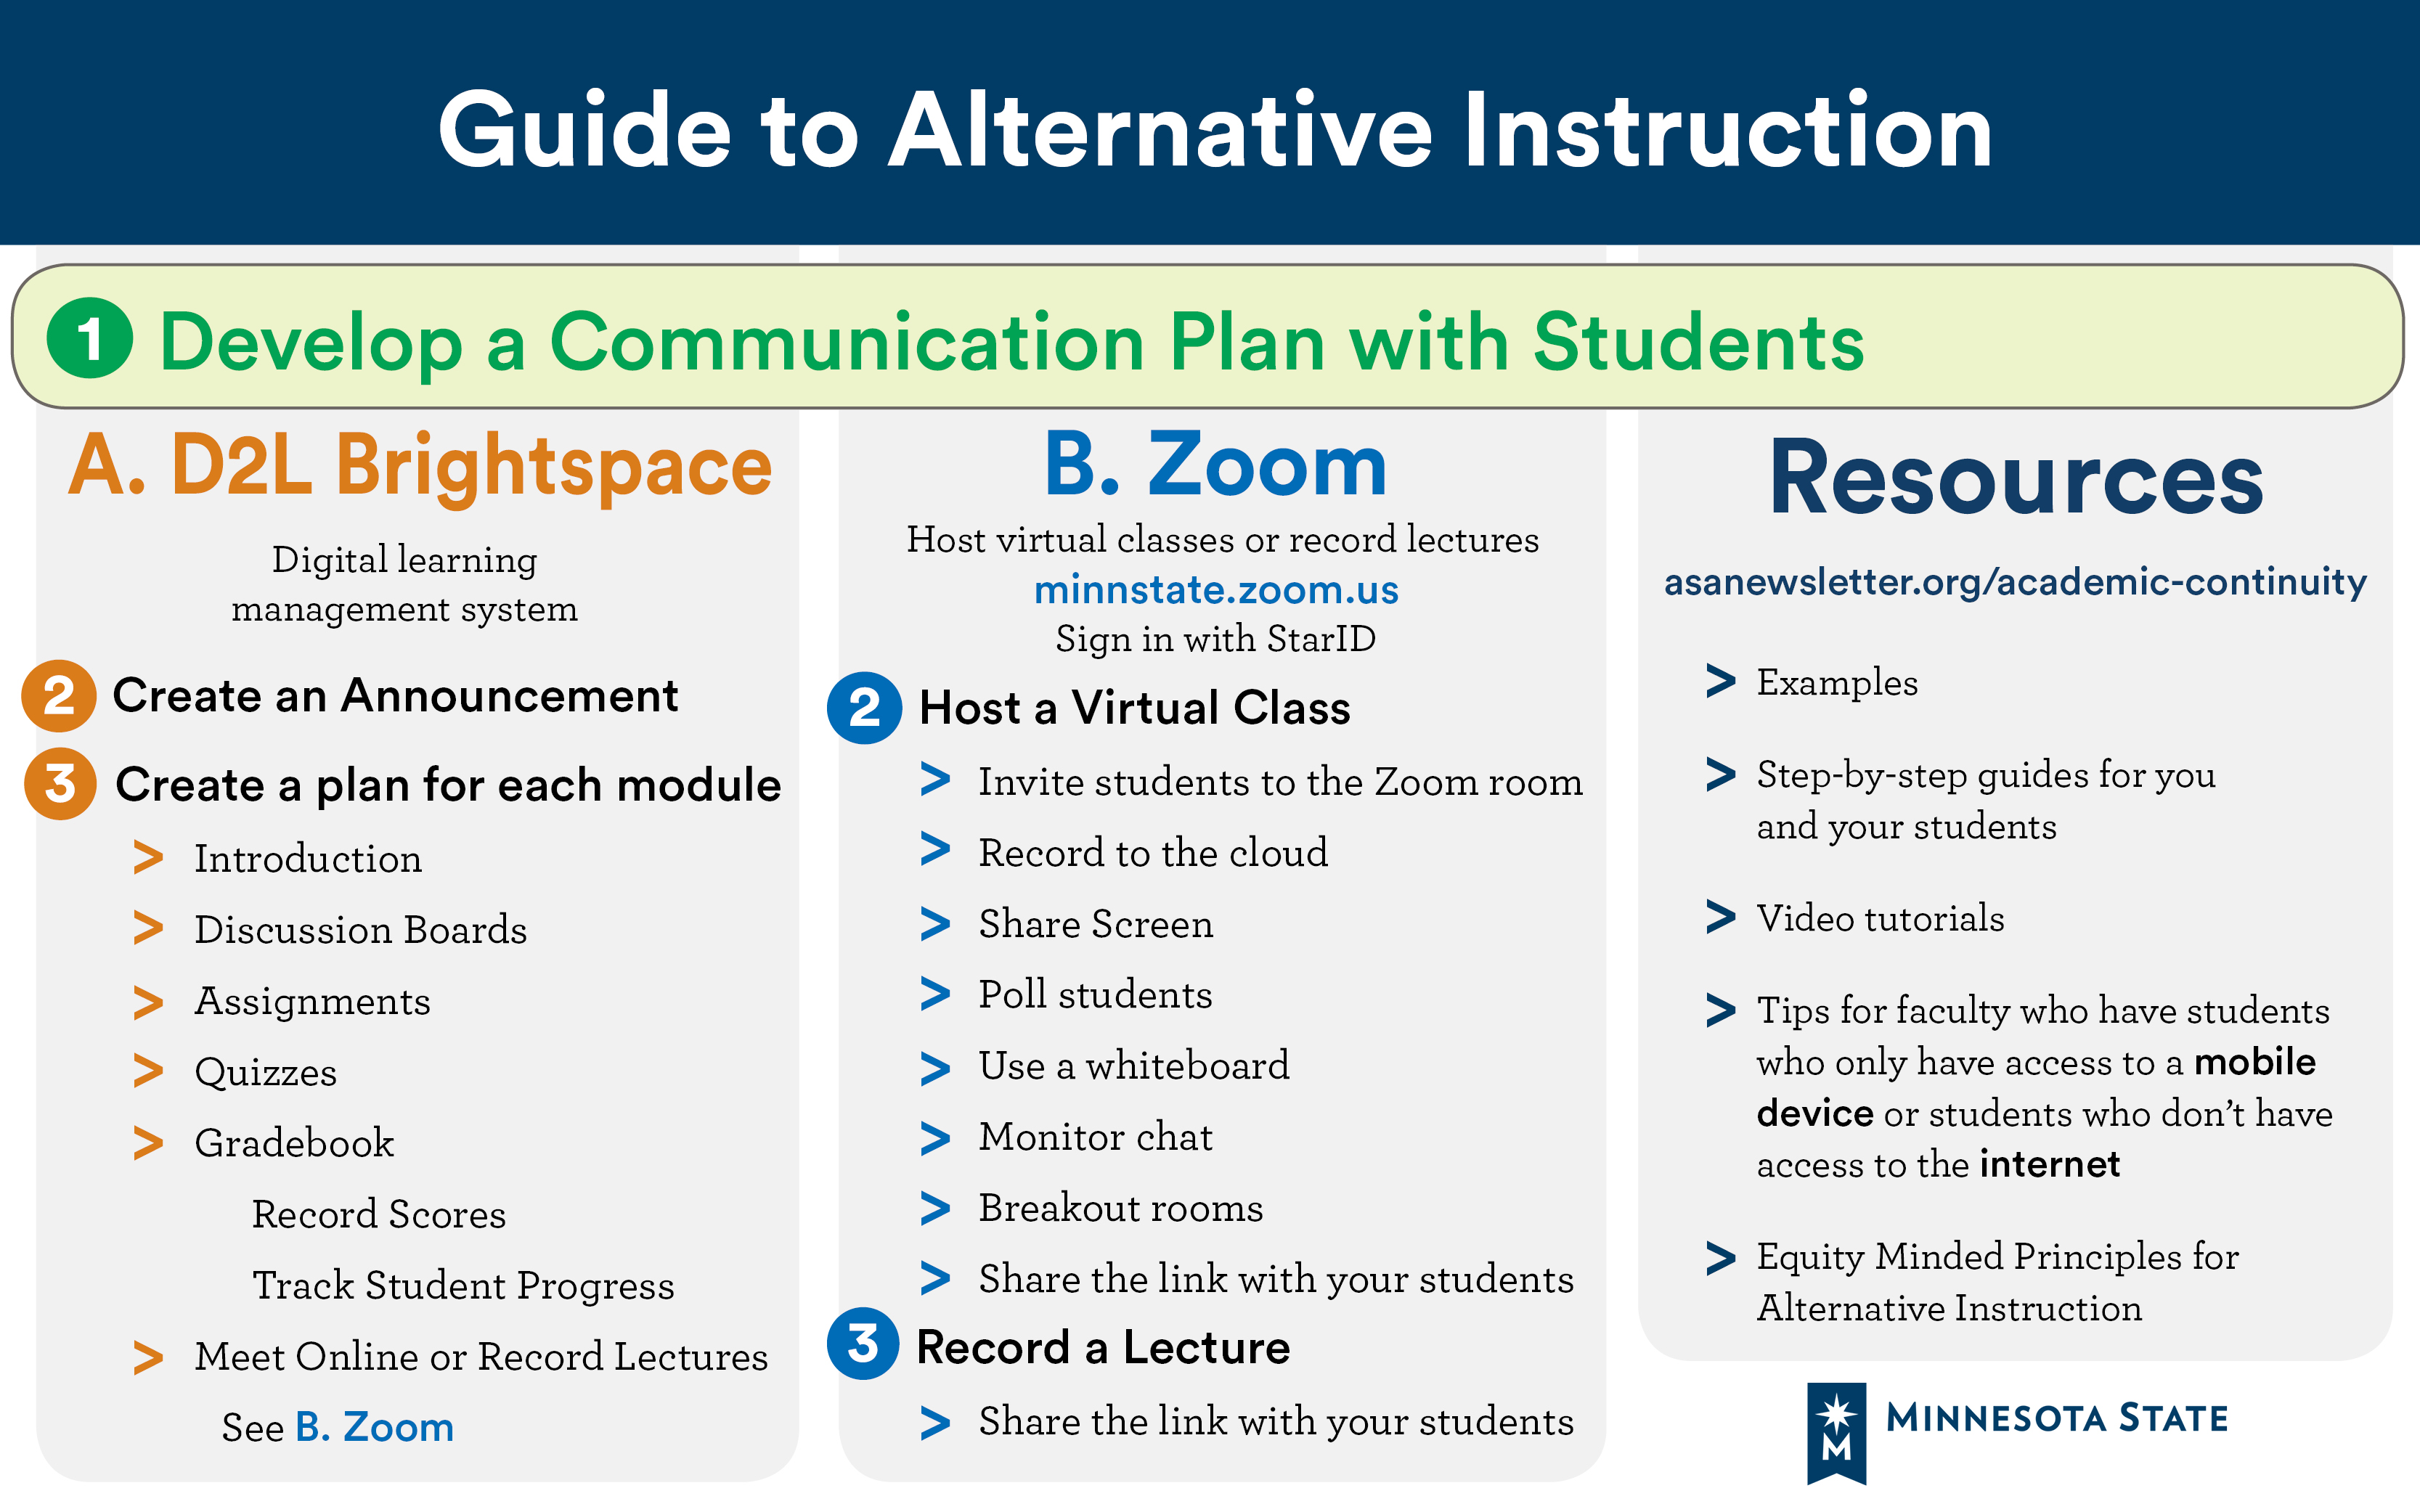 Guide to alternative instruction graphic